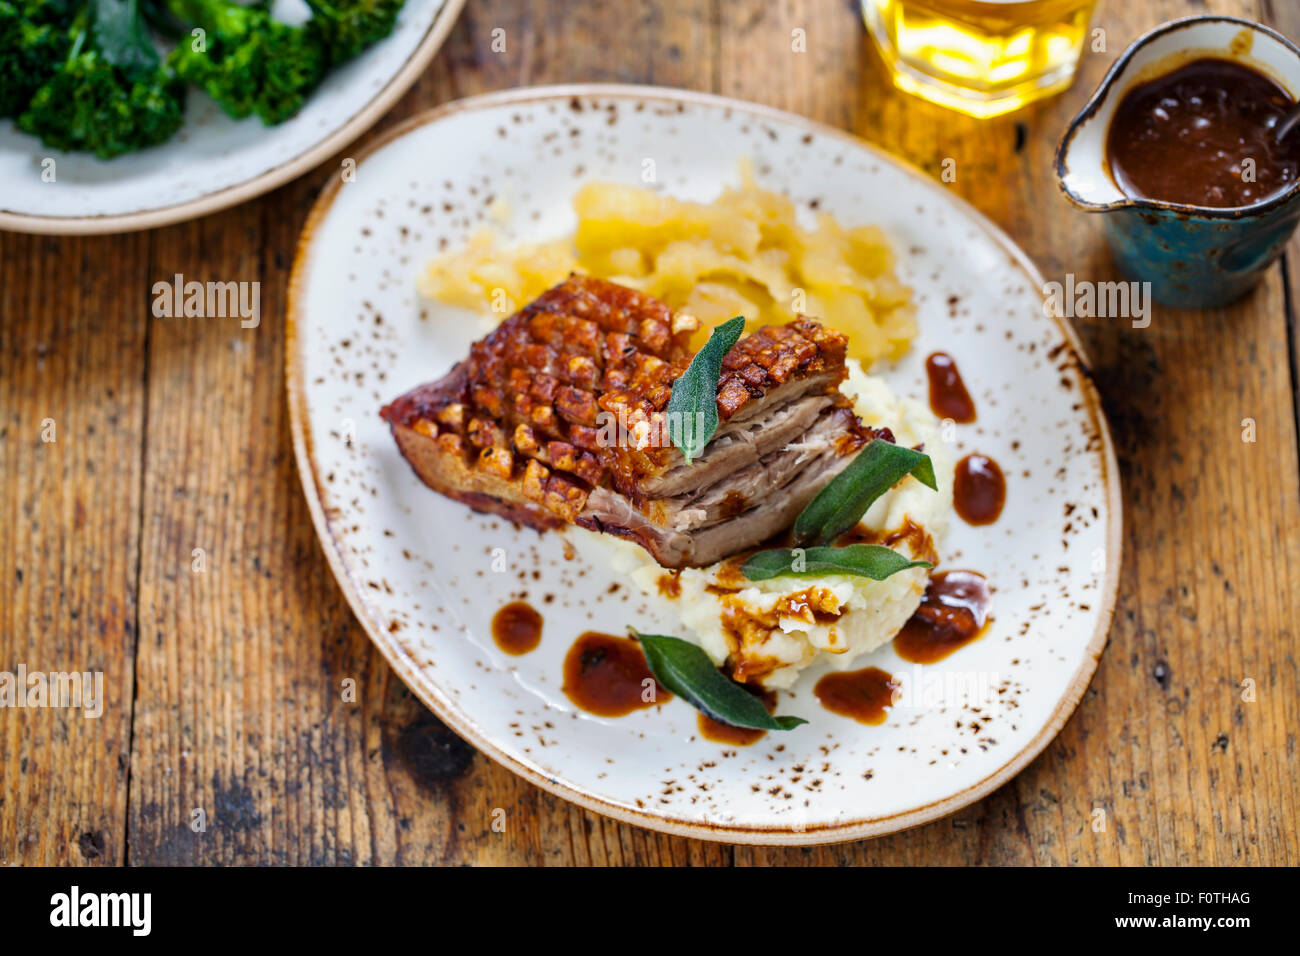 Pork belly with crackling, mashed potatoes, apple sauce and deep fried sage leaves - Stock Image